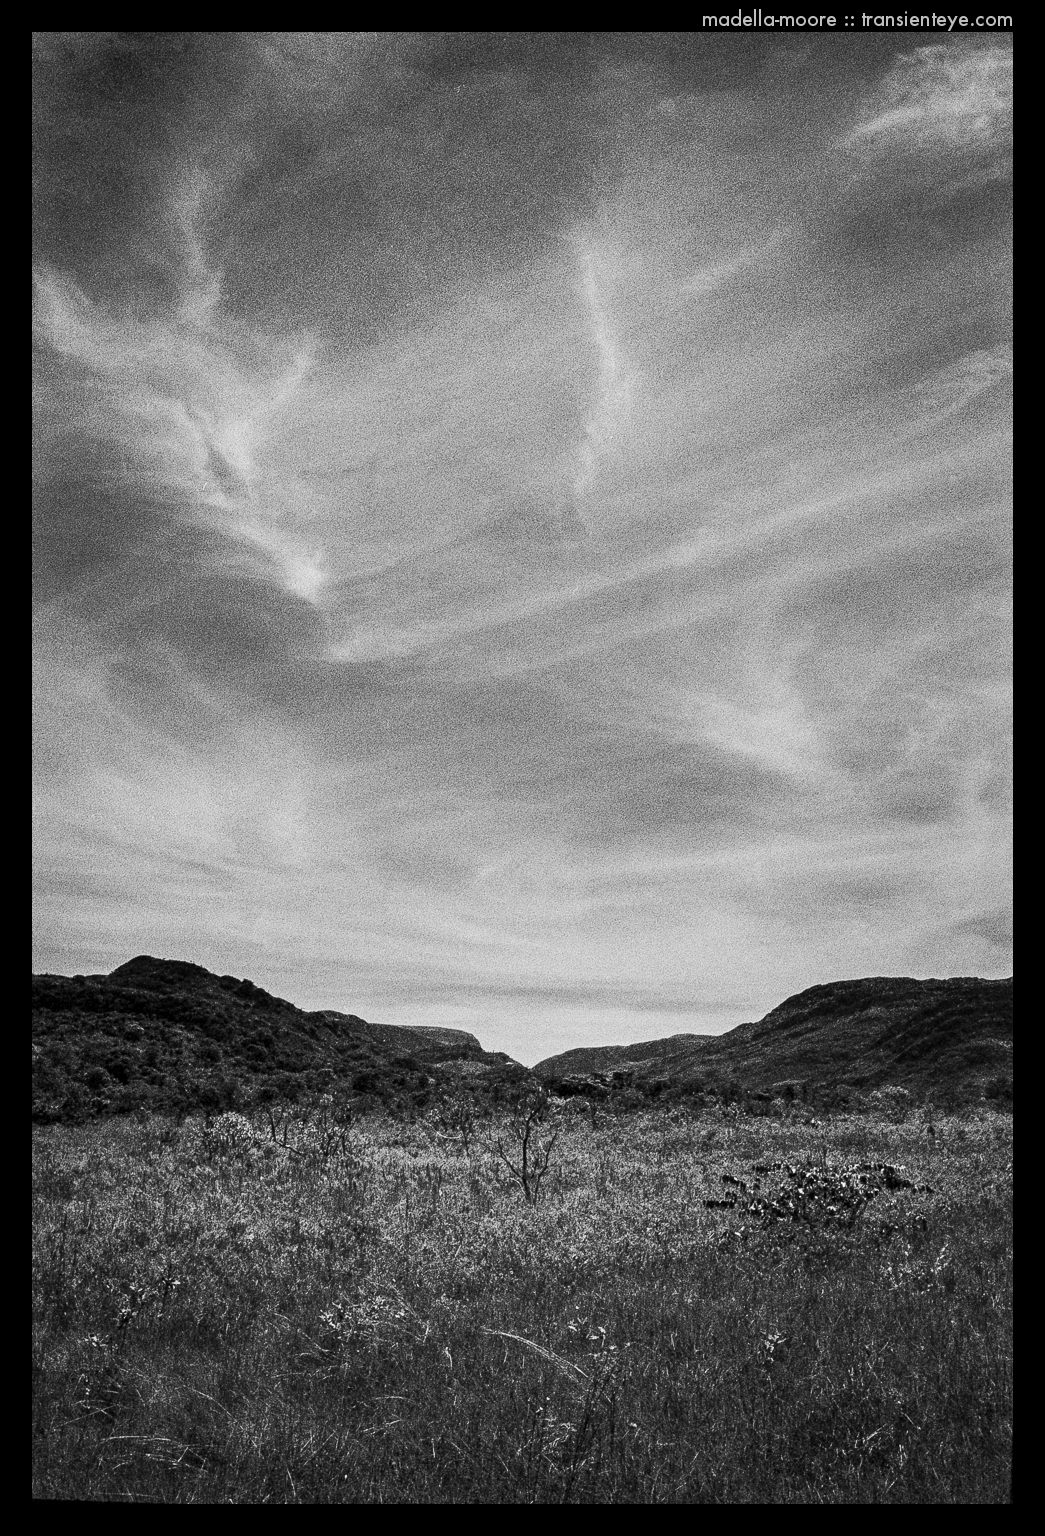 Parque Nacional da Serro da Cipó,. Black and white using Ilford HP5+ with a red filter and polariser.